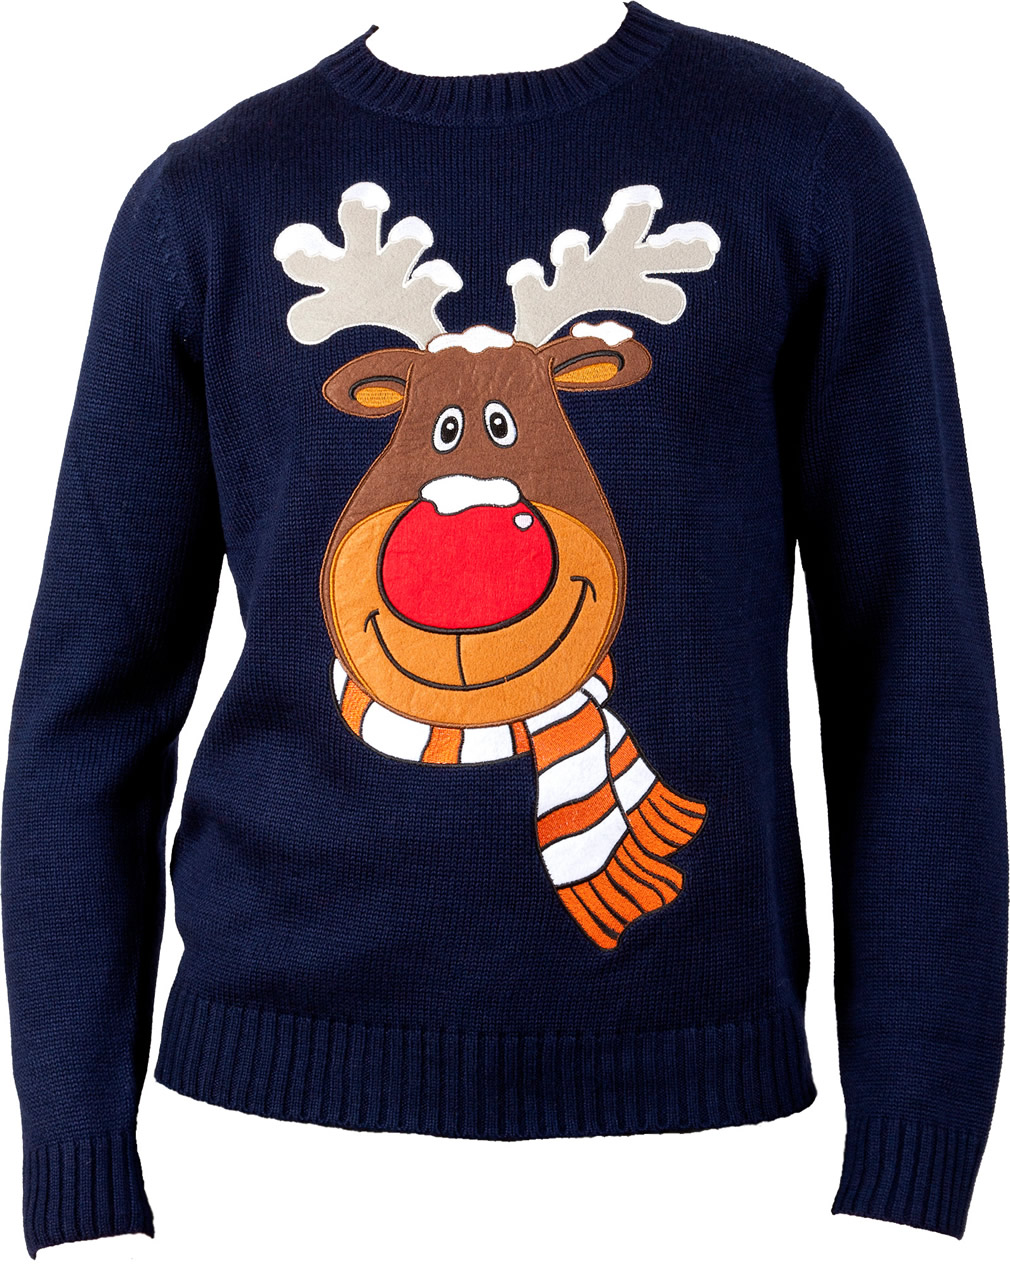 BOBIBI Pet Holiday Cartoon Reindeer Christmas Dog Sweater Ranging in size from XS ($) to XL ($), this shirt will make your fluffy reindeer the talk of the Ugly Christmas Sweater party. Limited stock available, so hurry up!